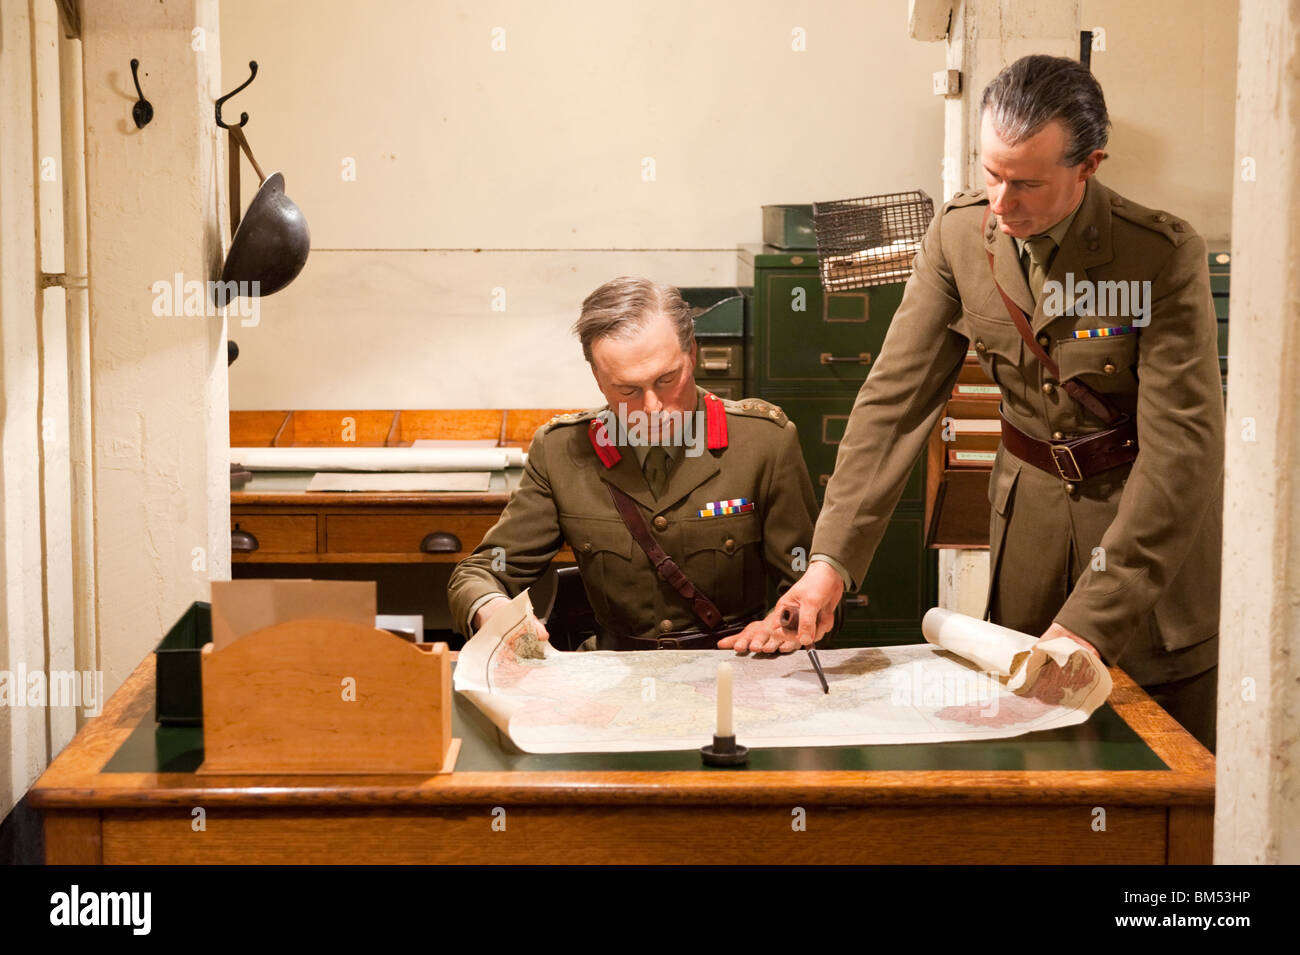 Model of army officers planning military strategy in the Churchill War Rooms museum, London, England, UK Stock Photo